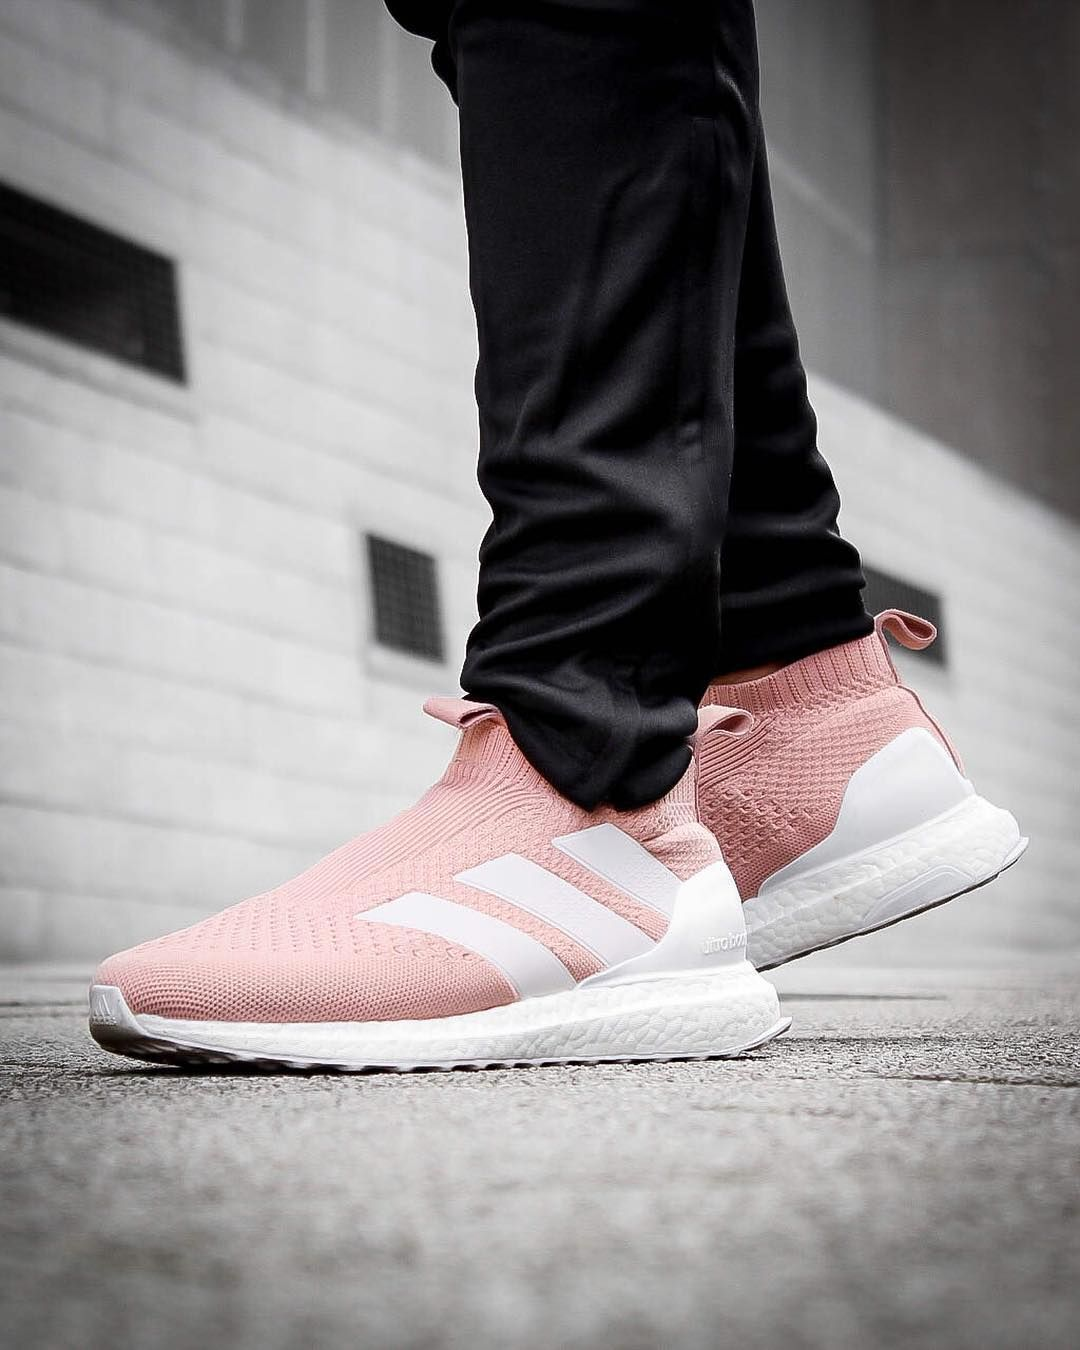 best sneakers 02078 d0680 ... KITH x adidas ACE 16 PureControl Ultra Boost . ...